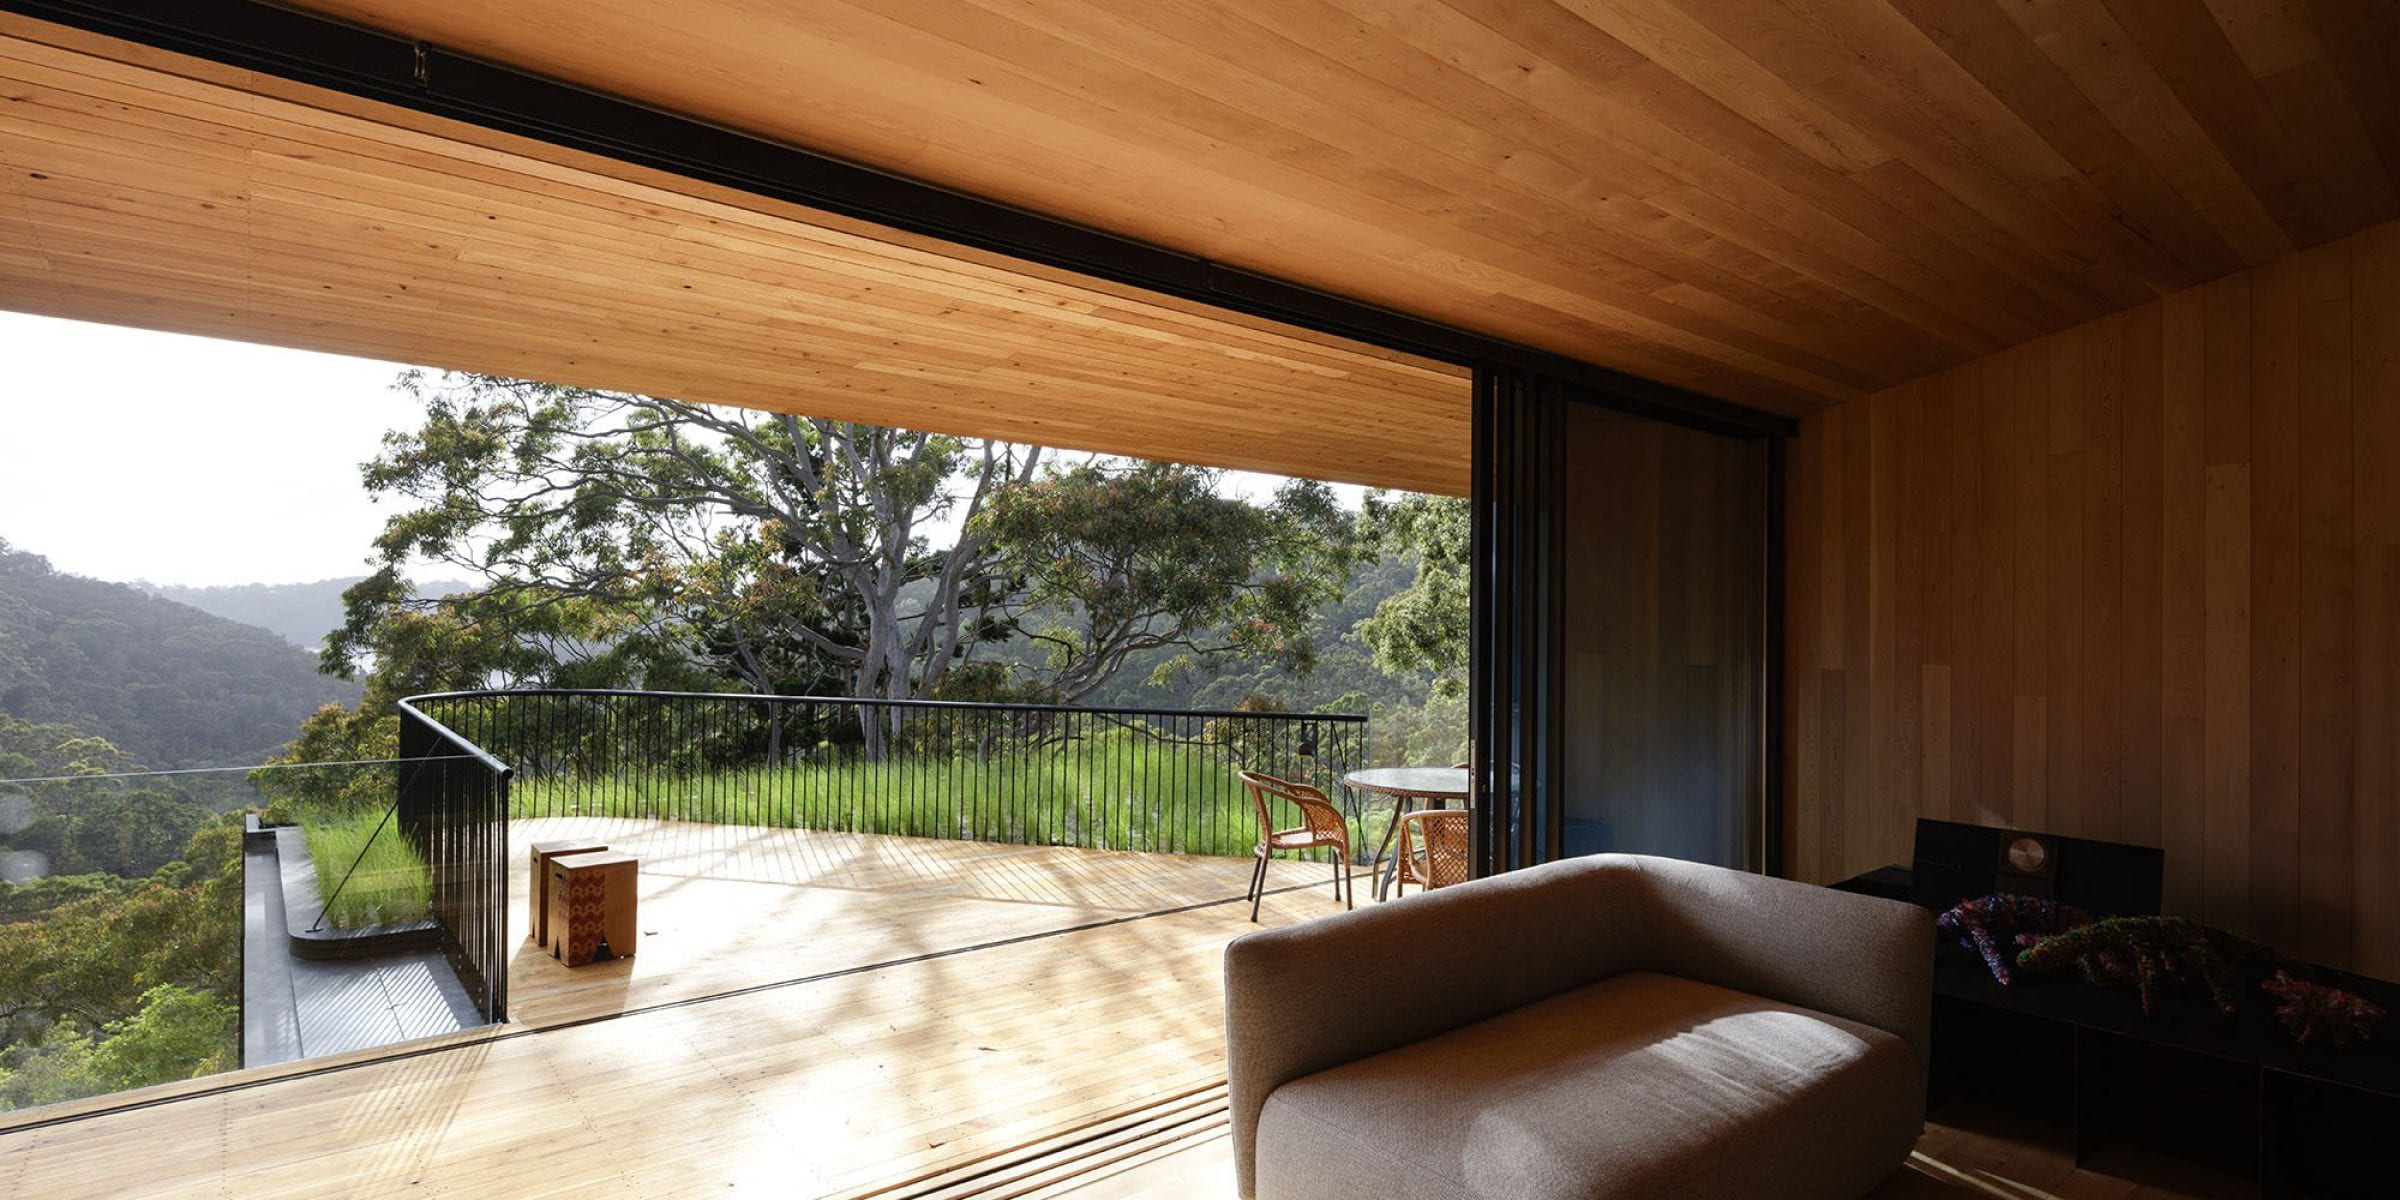 The living room blurs the lines between outdoors and inside